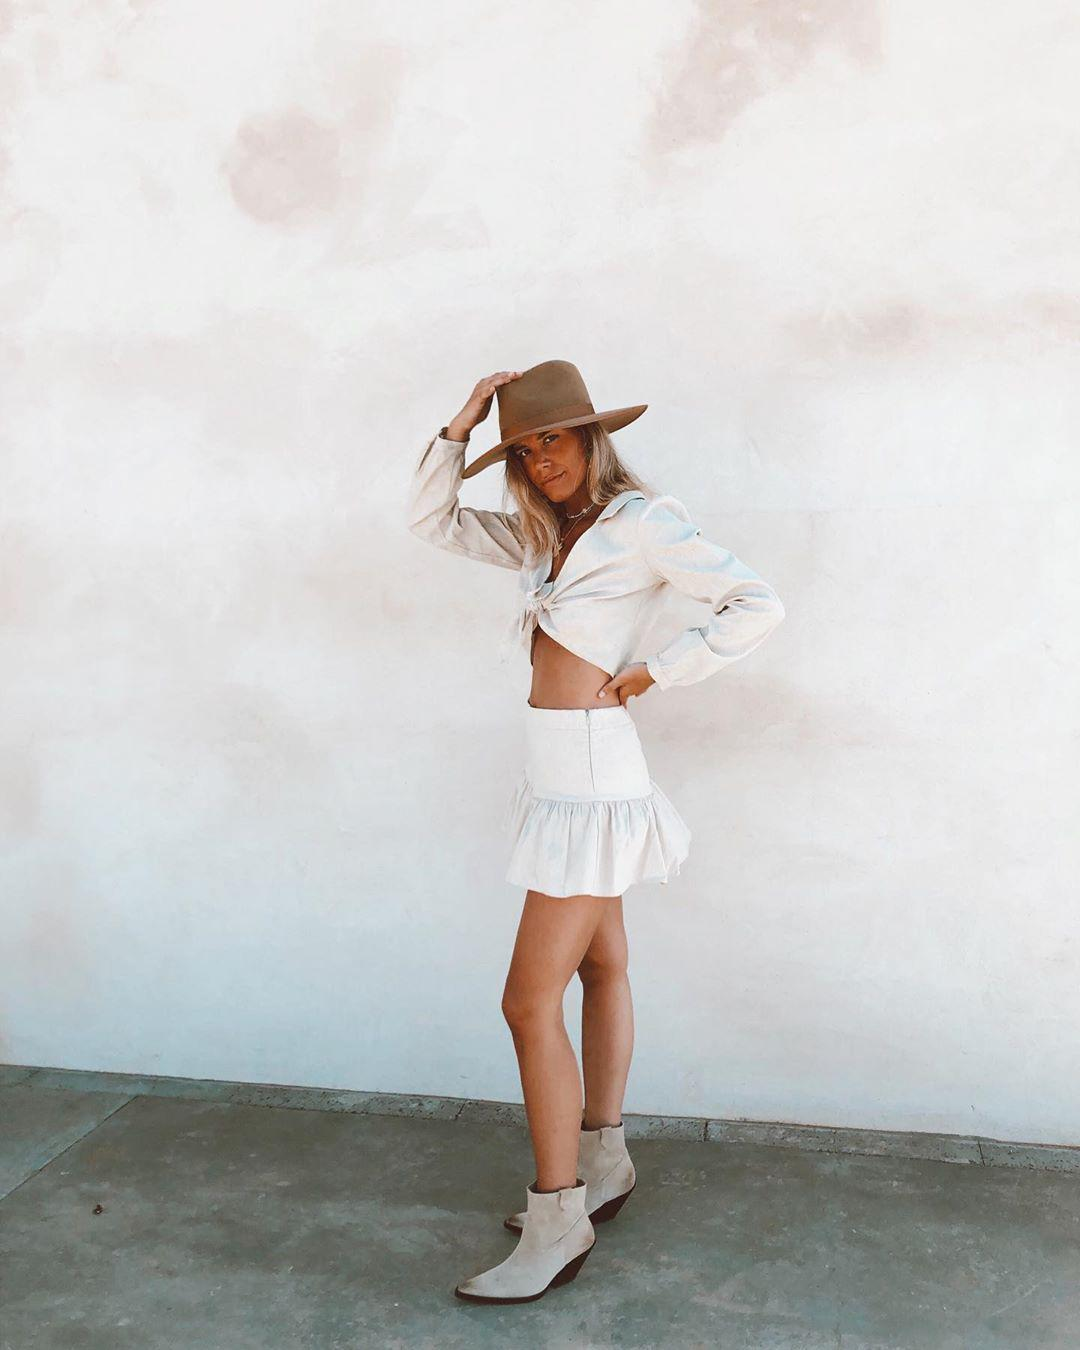 Gorgeous Summer Outfit Ideas to Copy This Year summer outfit, summer outfit ideas, summer outfit images, summer outfit styles, cool summer outfit